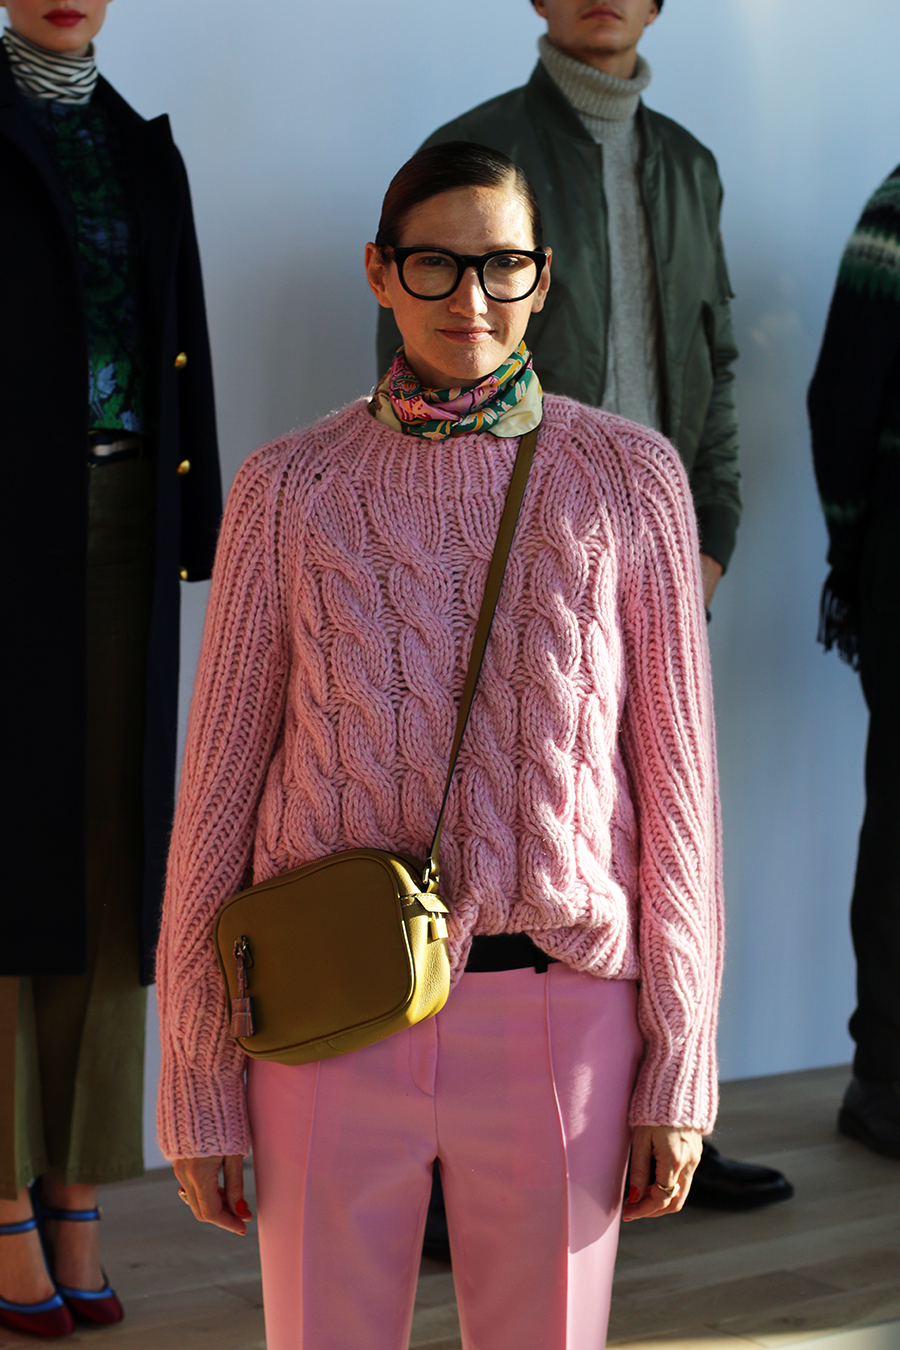 Jenna Lyons J Crew Fall Winter 2016 NYFW